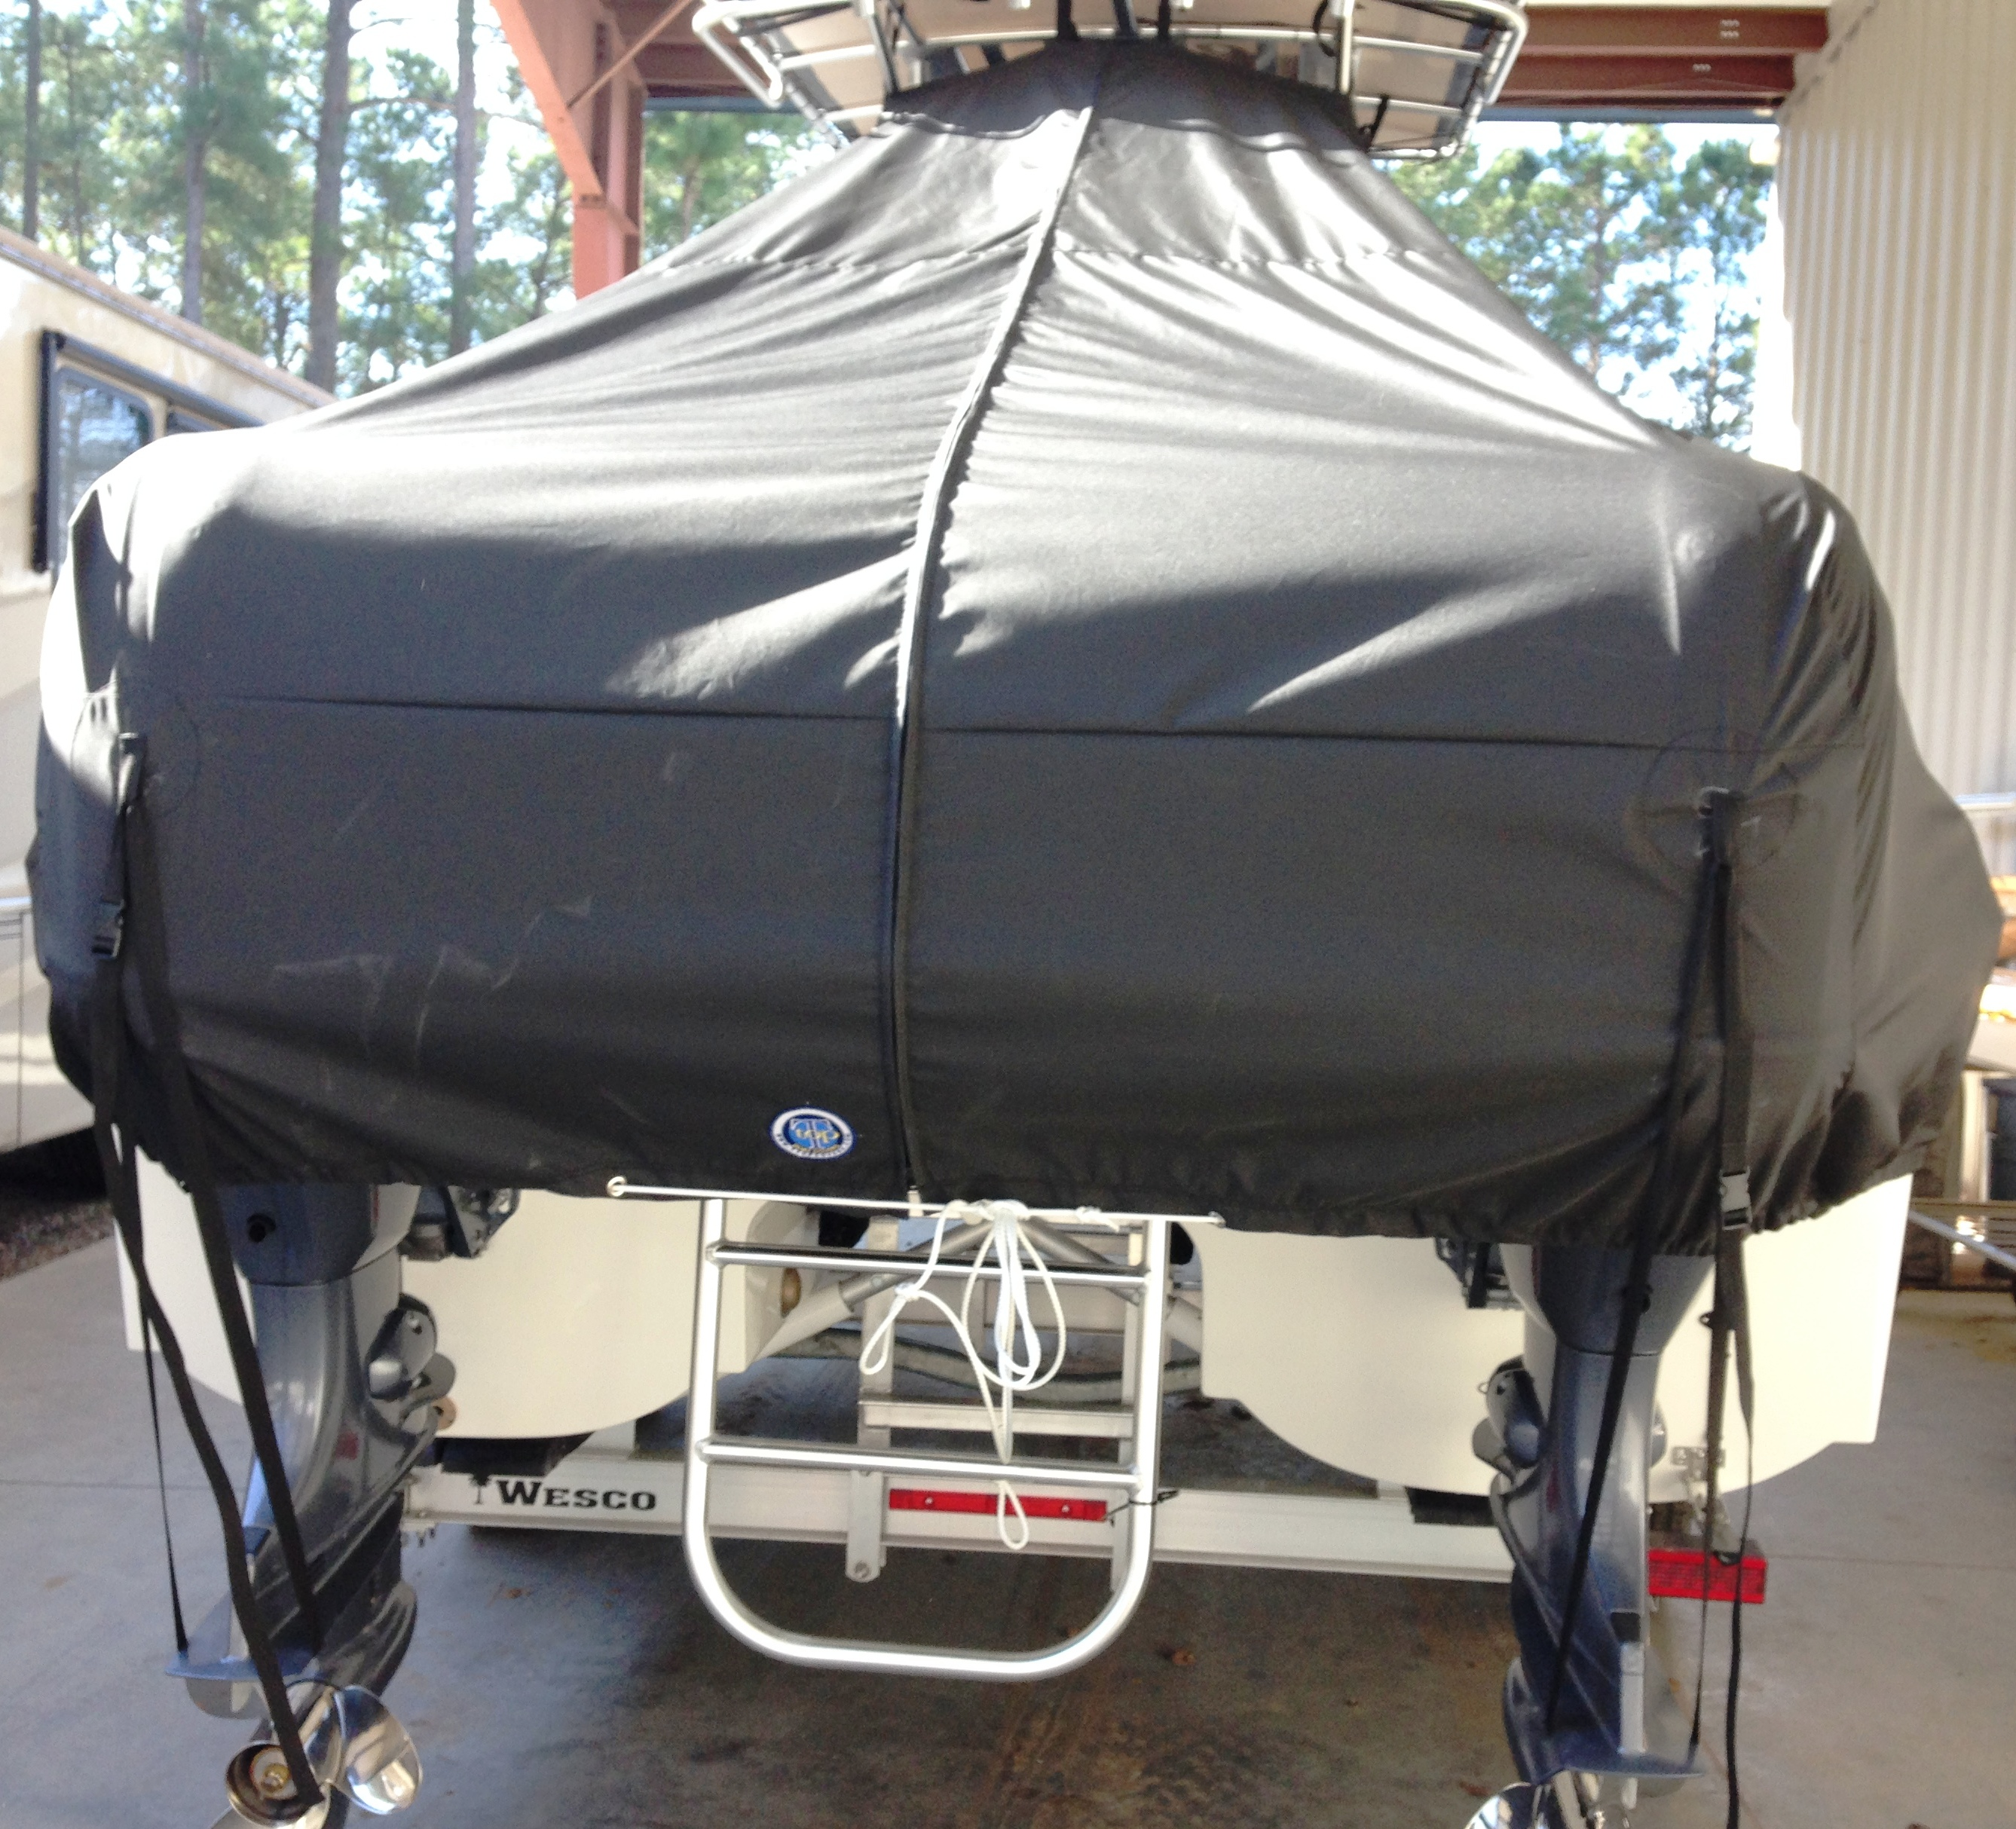 World Cat 230 CC, 20xx, TTopCovers™ T-Top boat cover rear